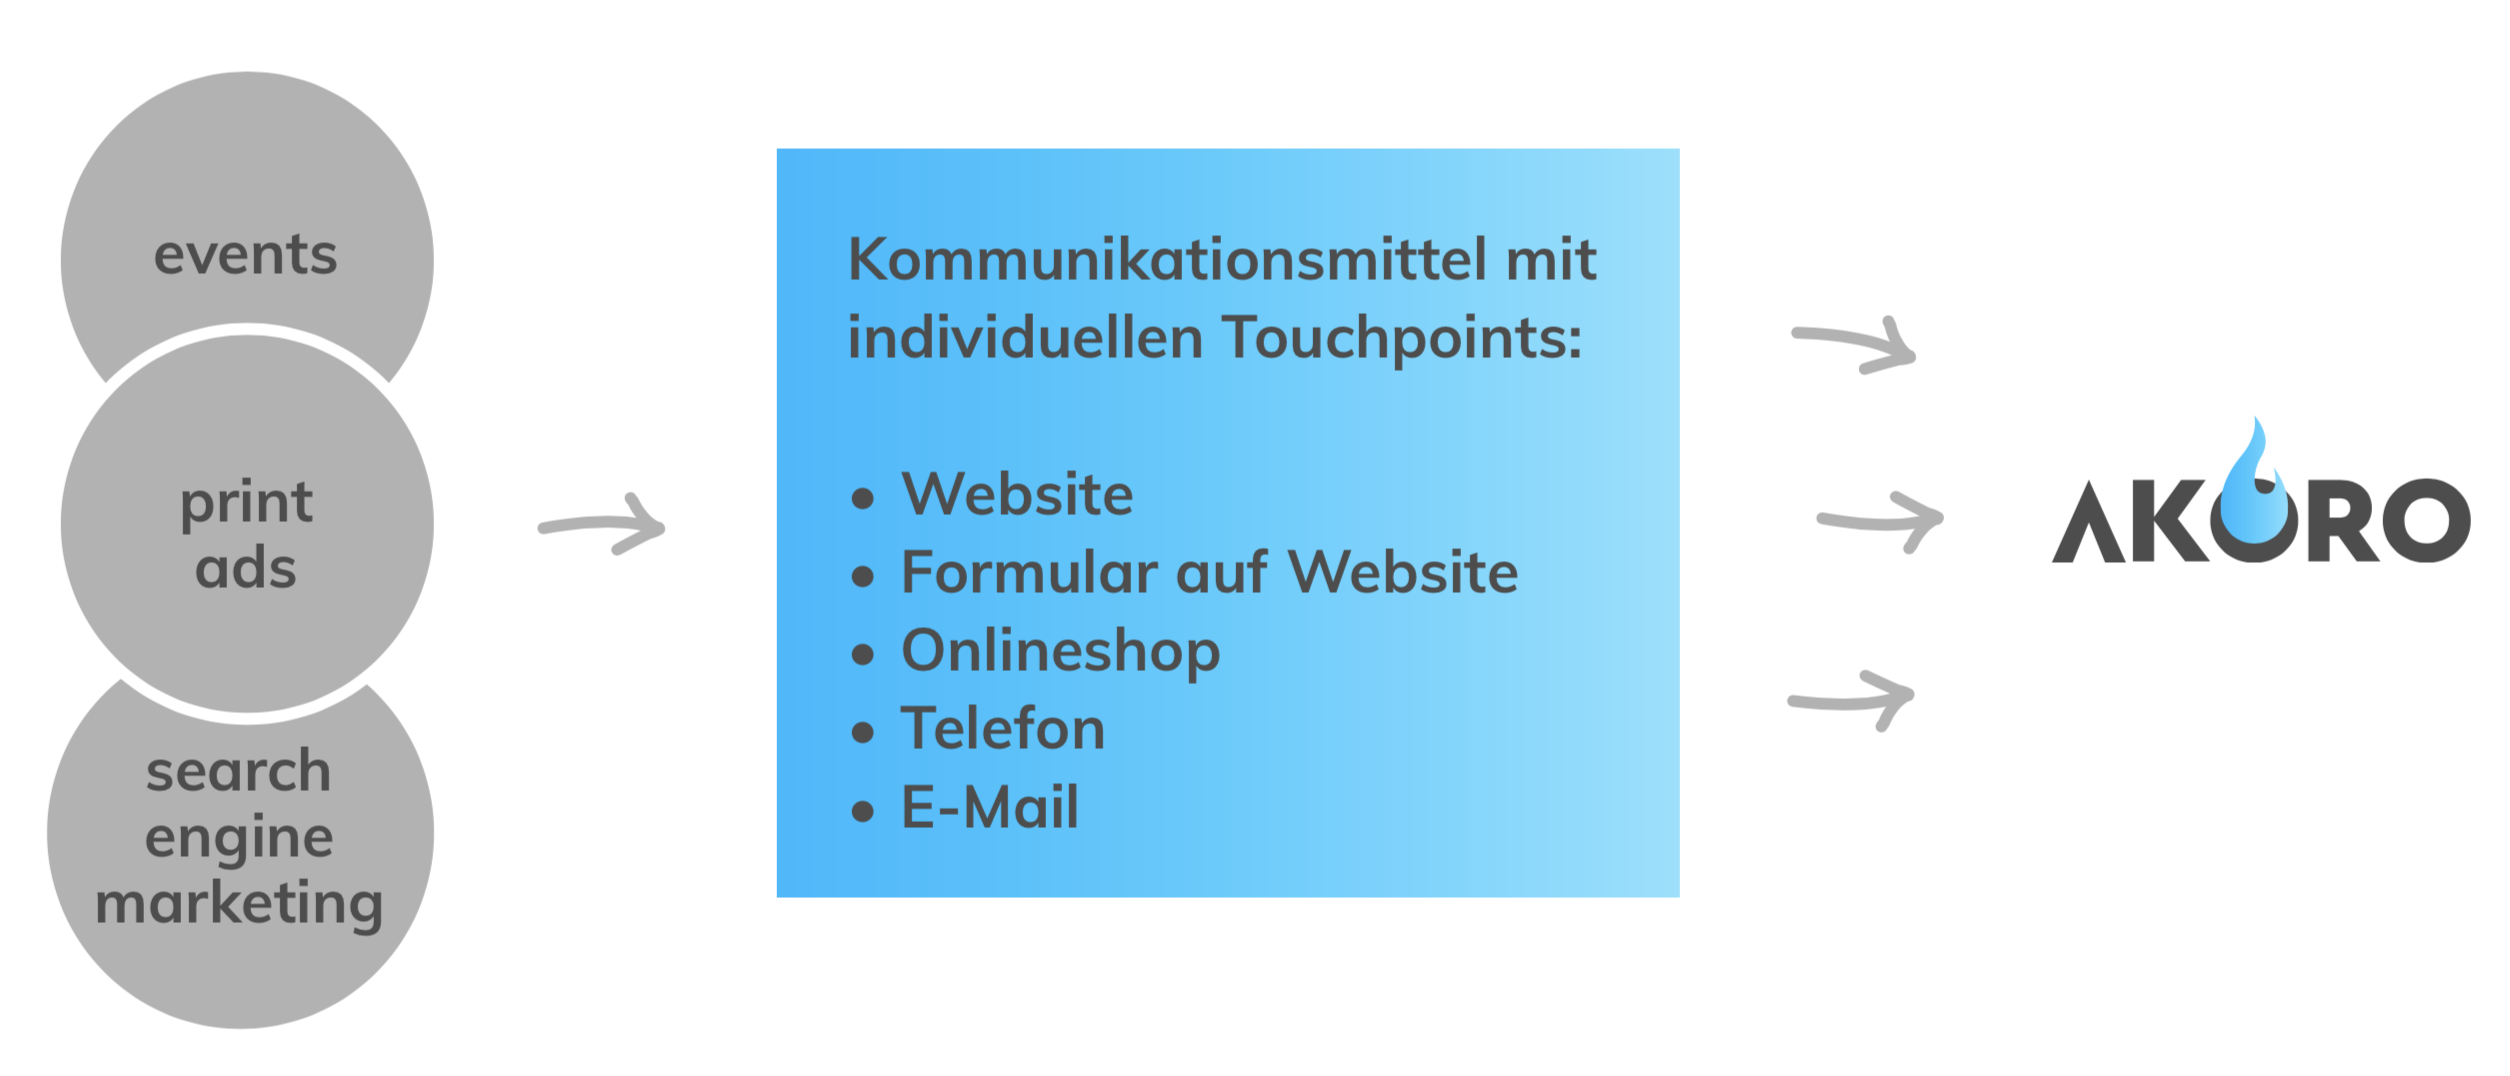 Funktion mittels Touchpoints